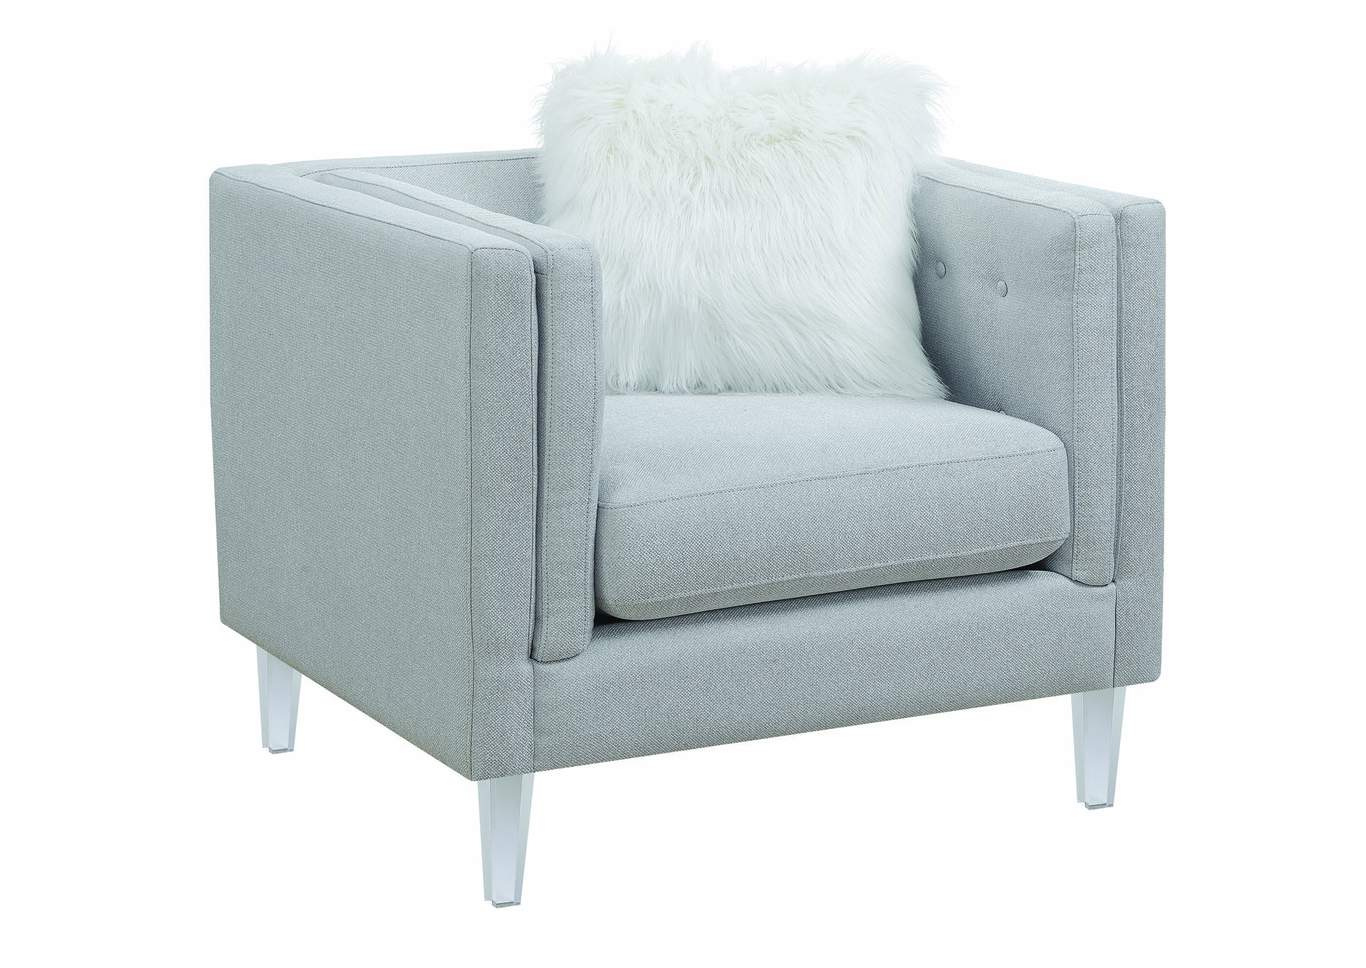 Light Gray Chair,Coaster Furniture